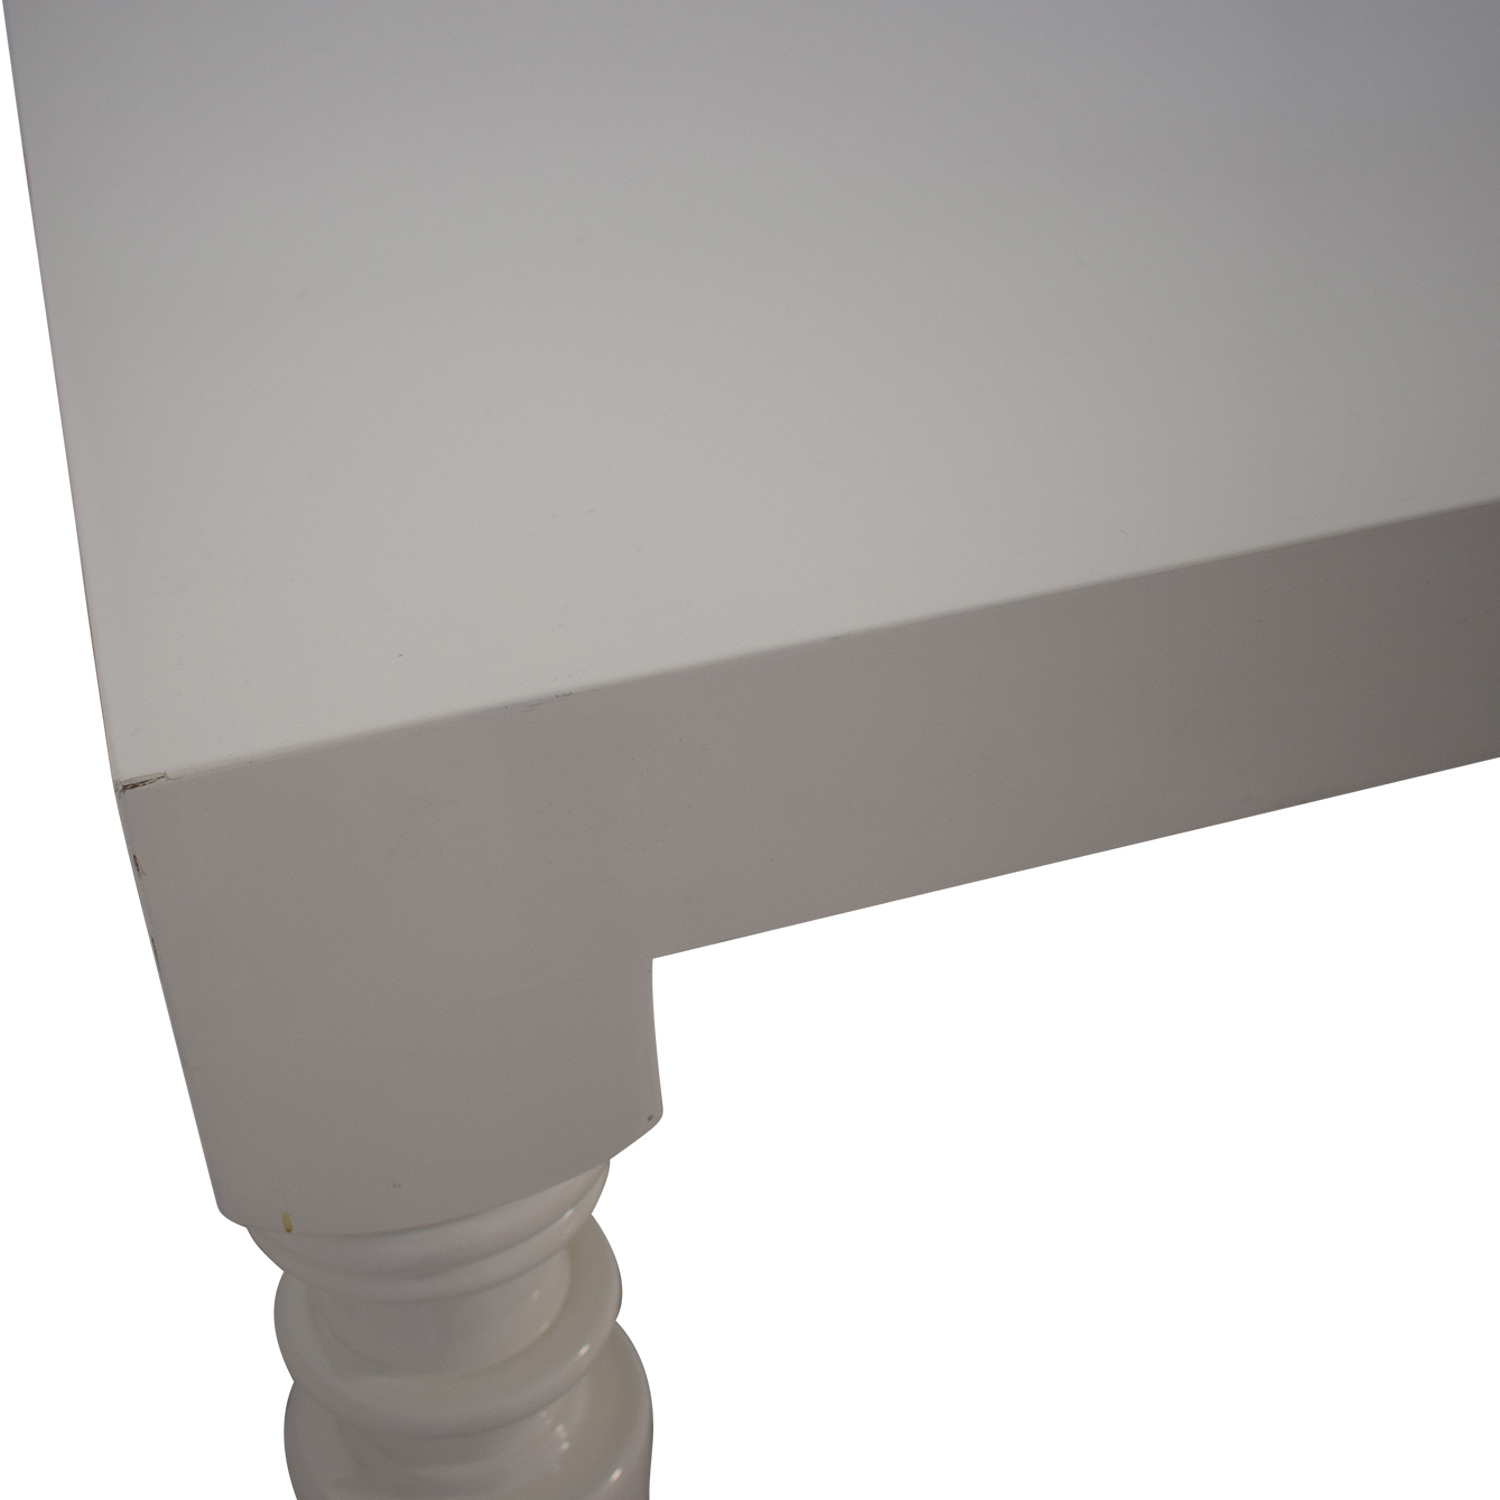 Modani Lacquer Dining Table / Dinner Tables